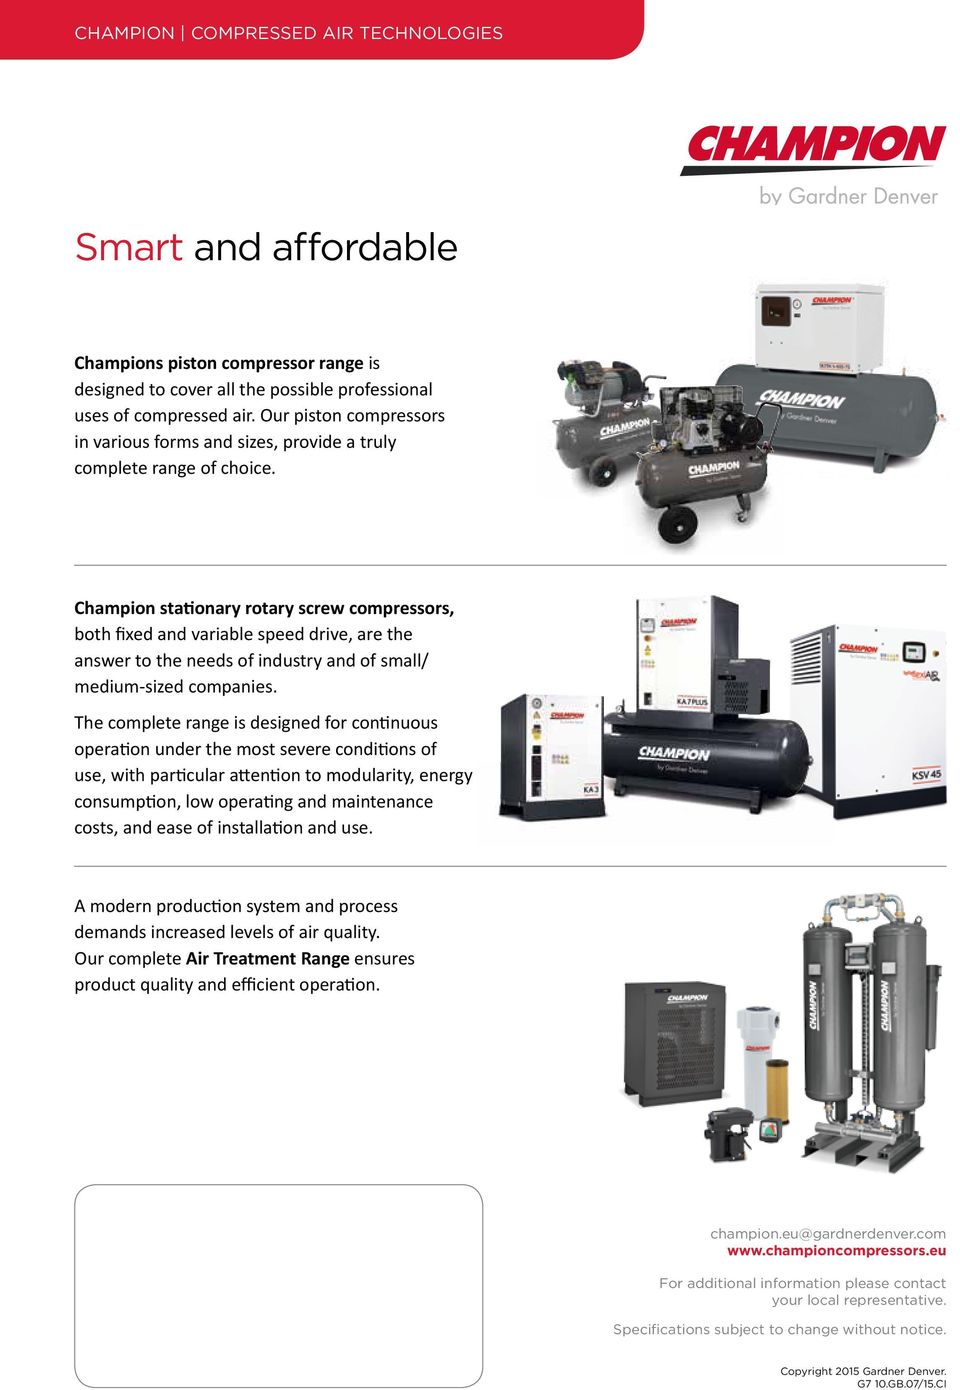 Champion stationary rotary screw compressors, both fixed and variable speed  drive, are the answer